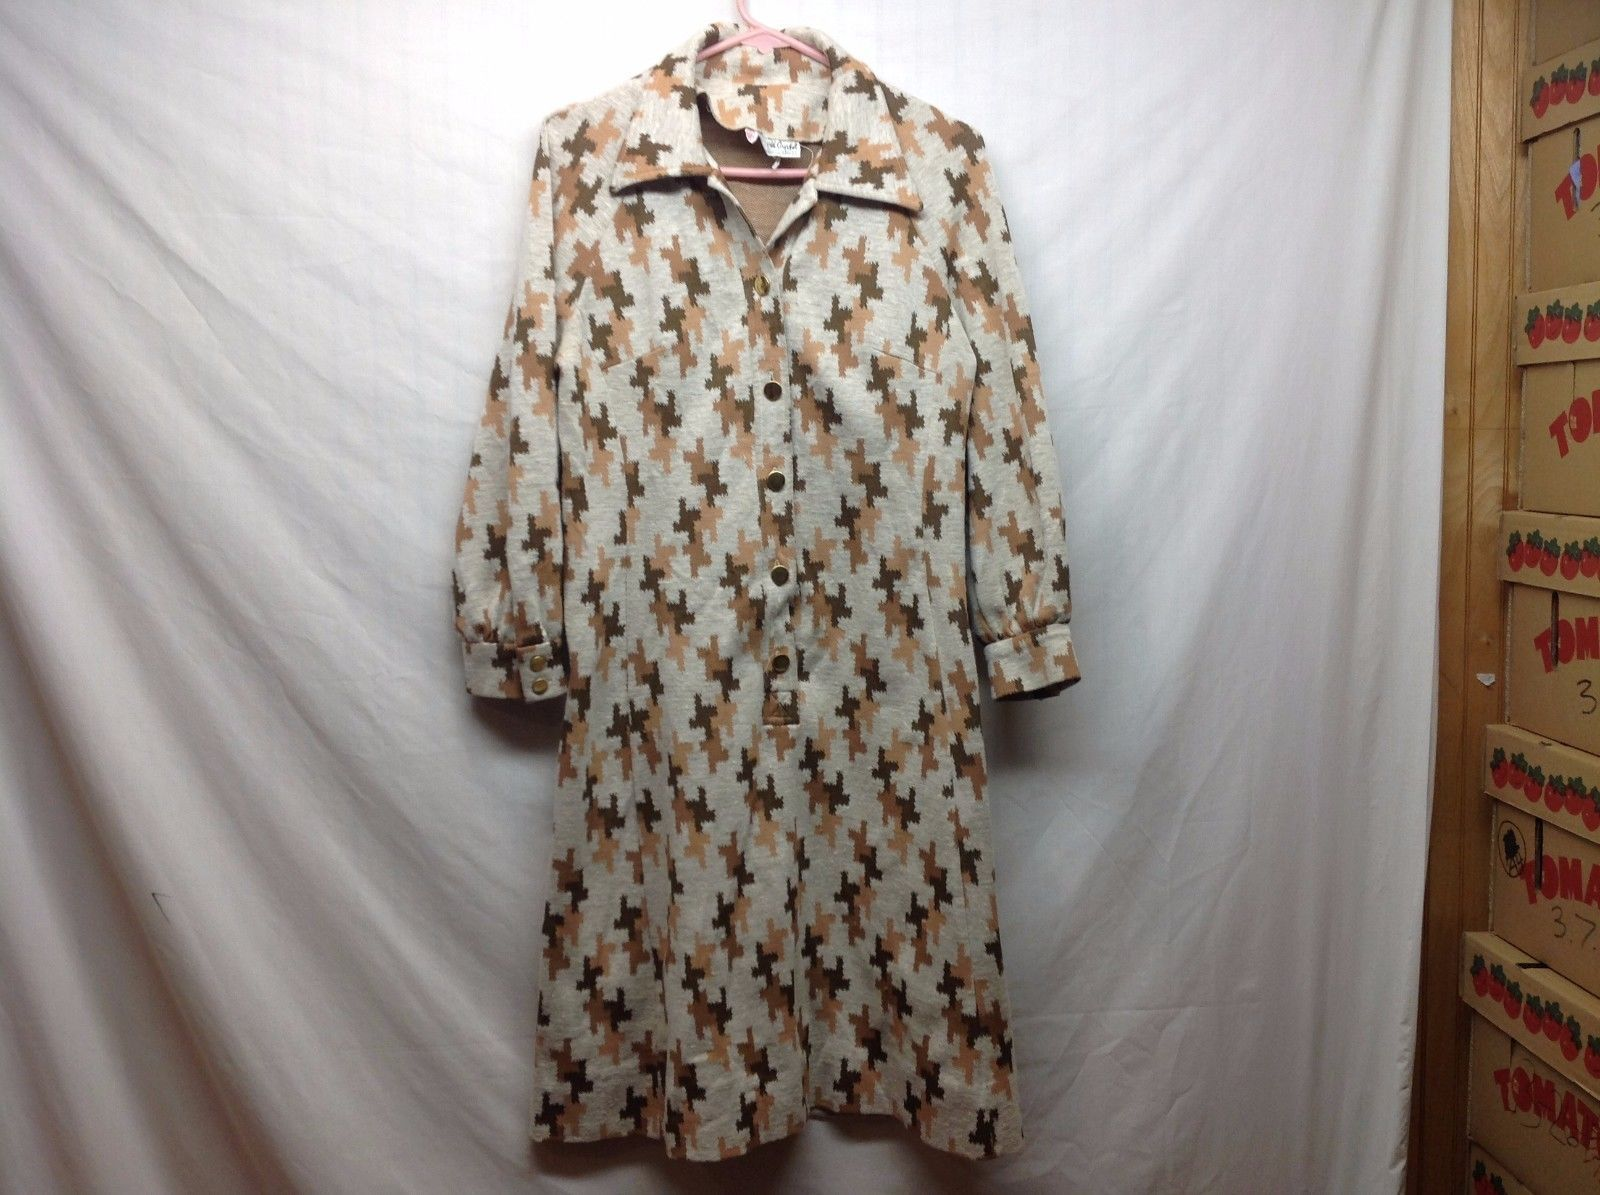 Womens Long Jacket Robe w Patchy Design by David Crystal Sz 16